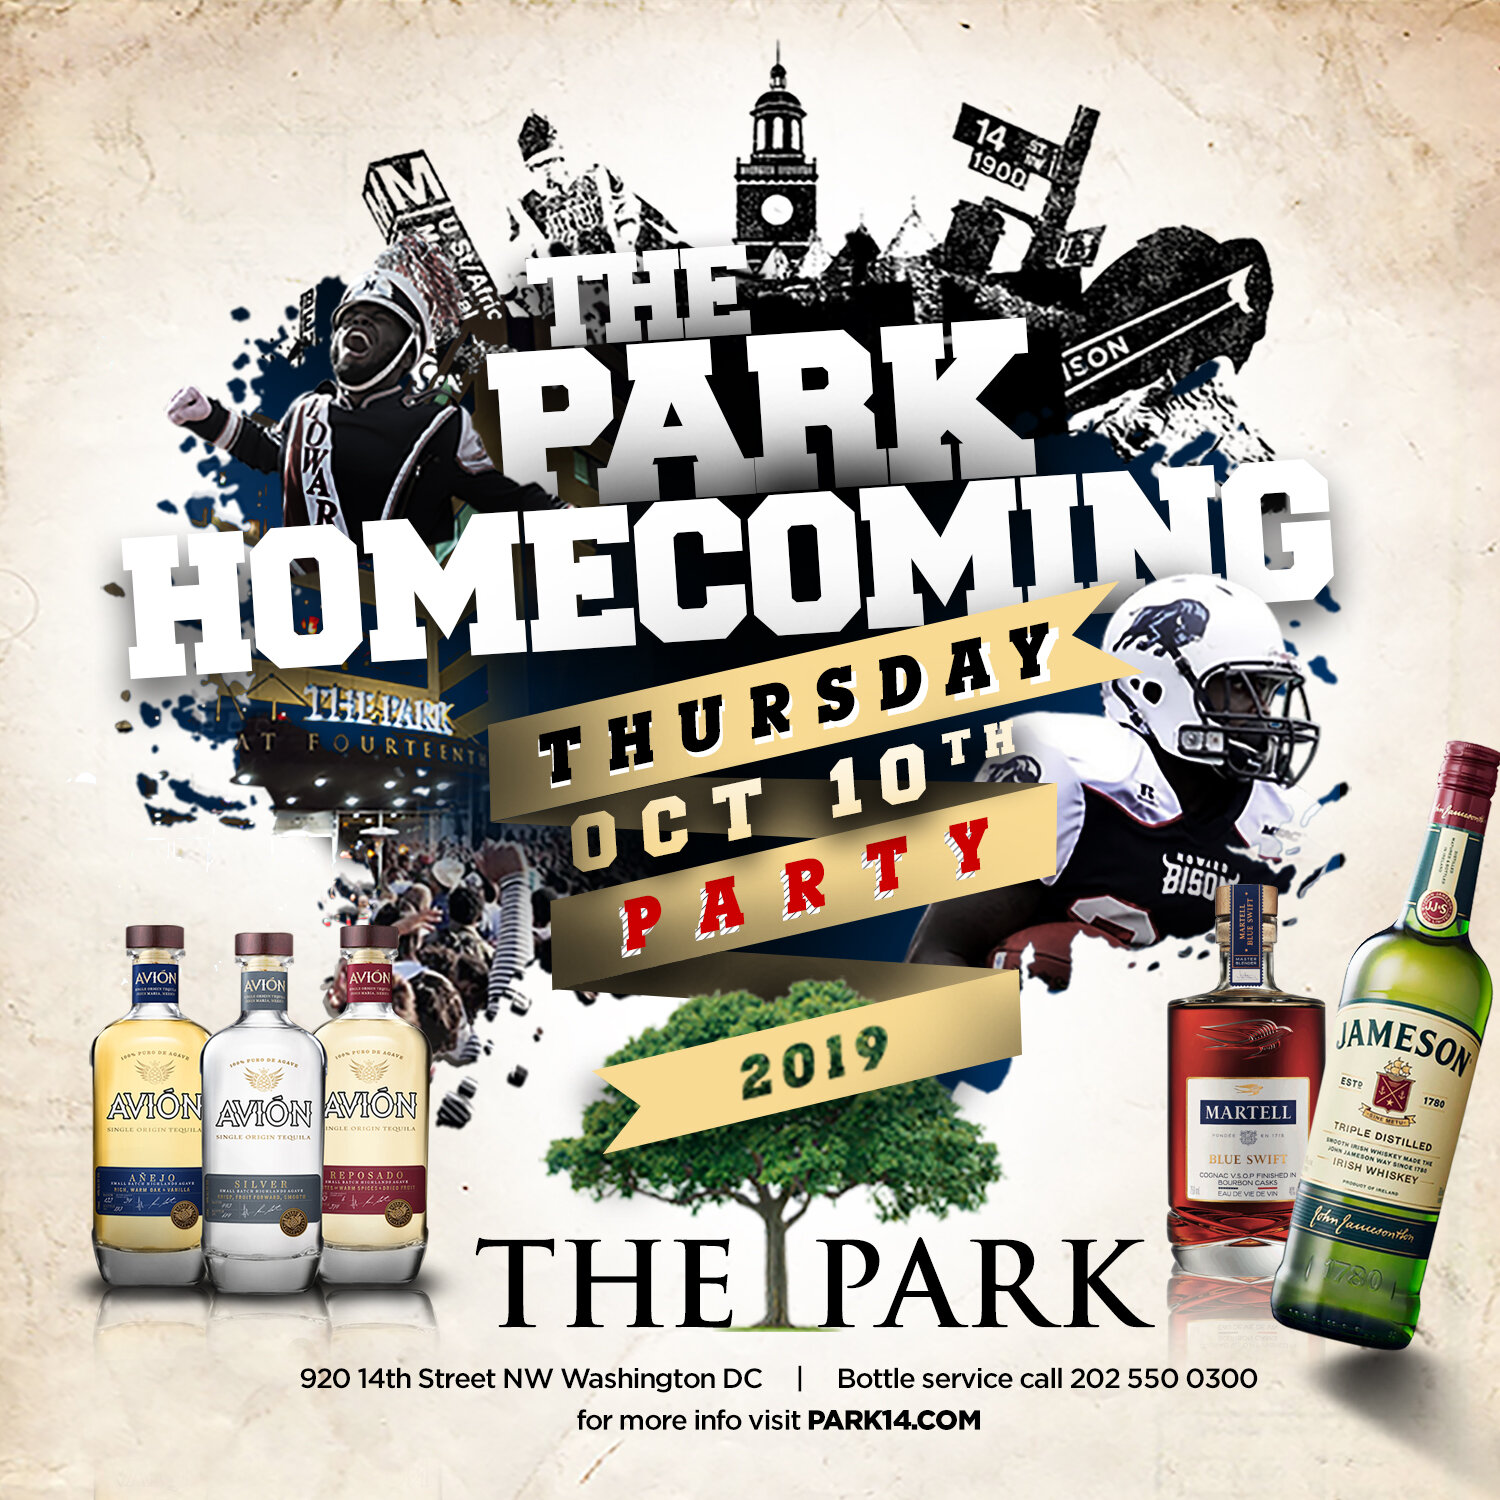 Thursday-Homecoming-Flyer.jpg